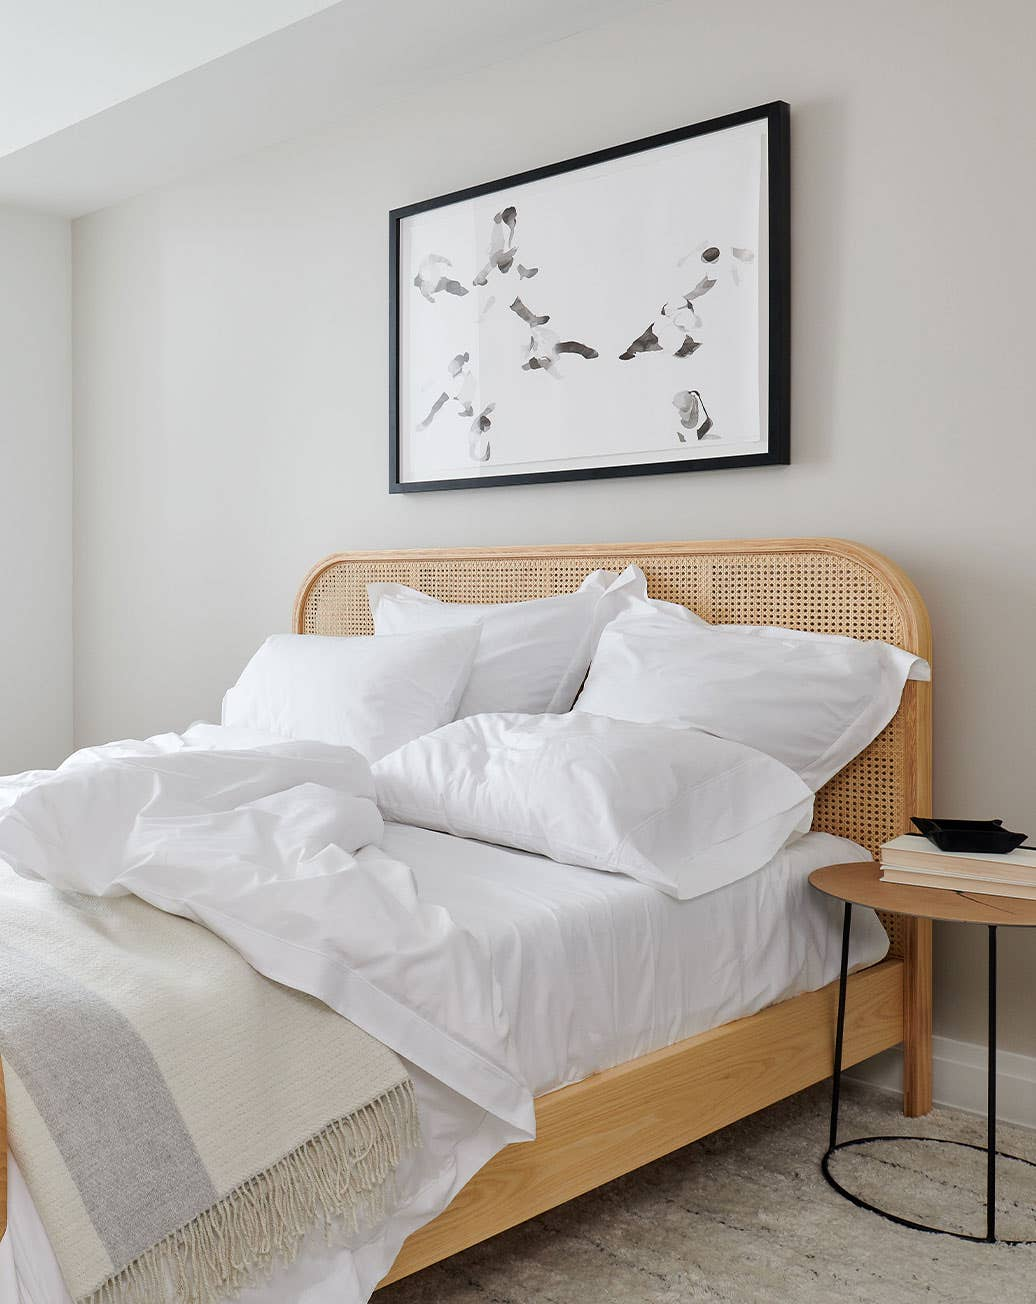 A bedroom furnished with Industry West furinture including a cane bed and wooden side table